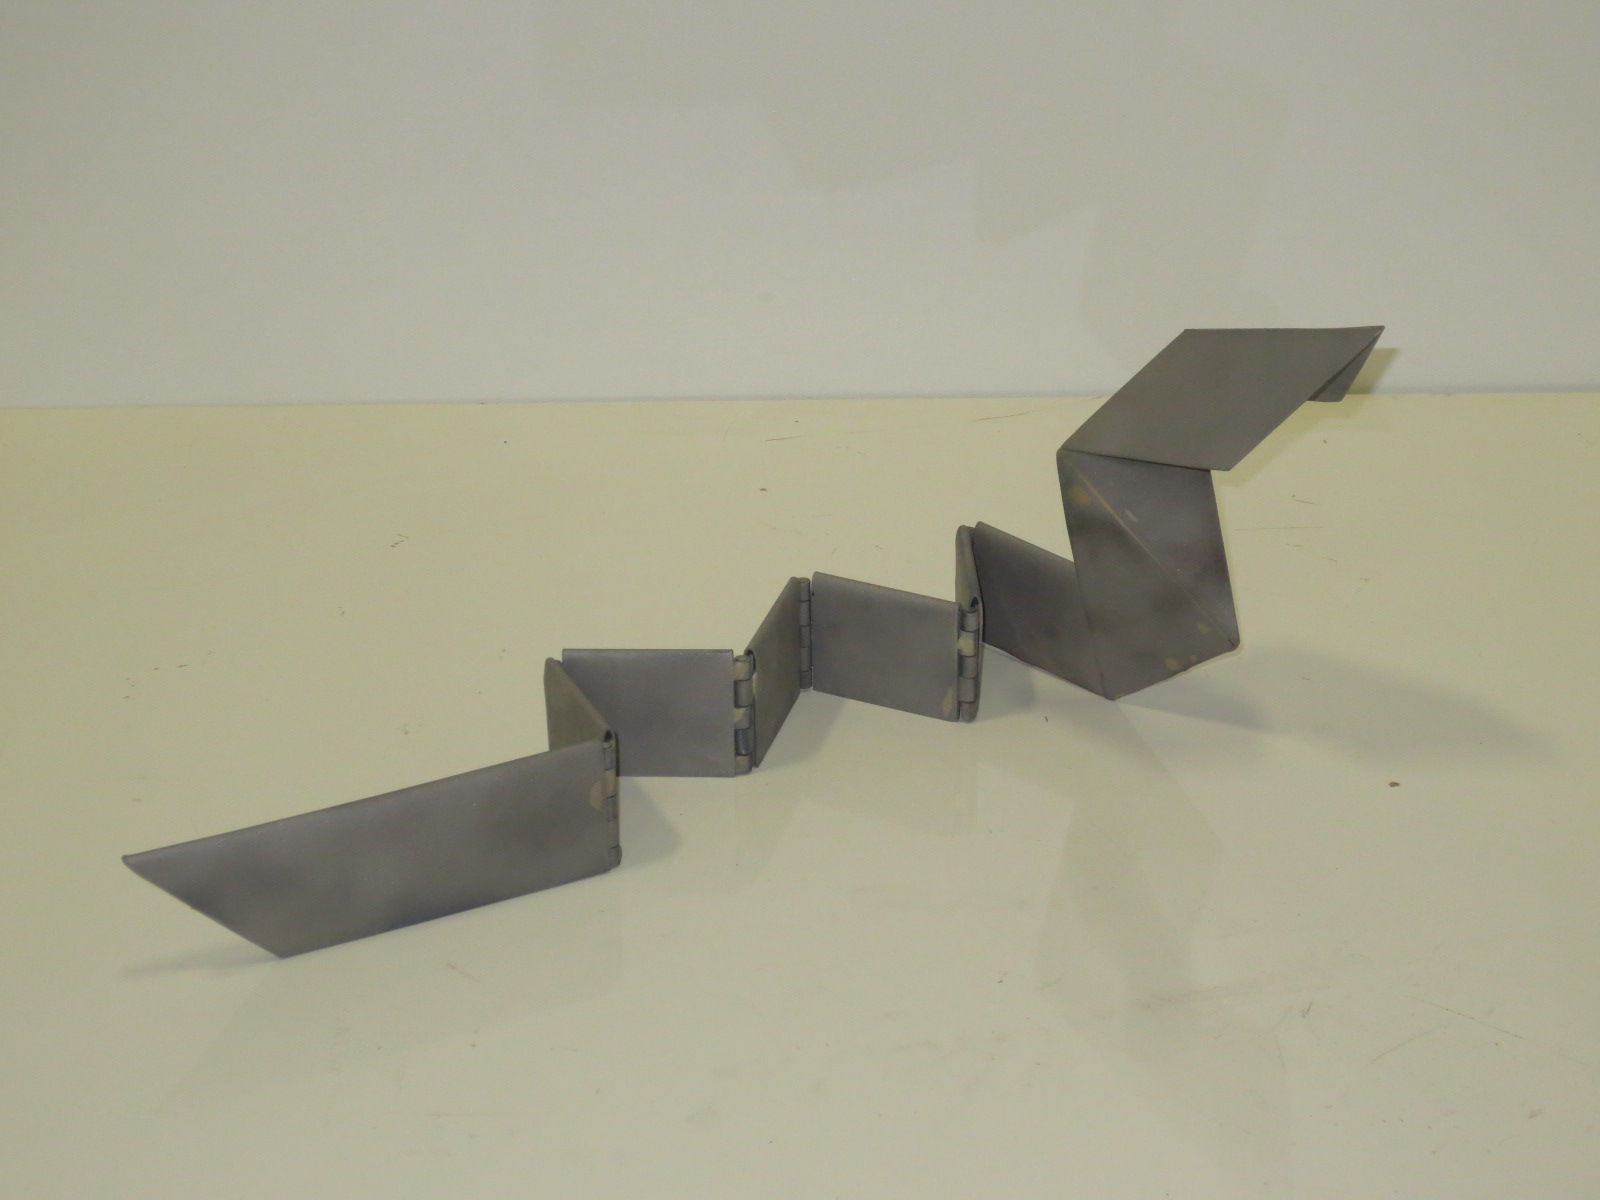 Origami by Andrew Anselmo - Other Projects - Mechanical ... - photo#36